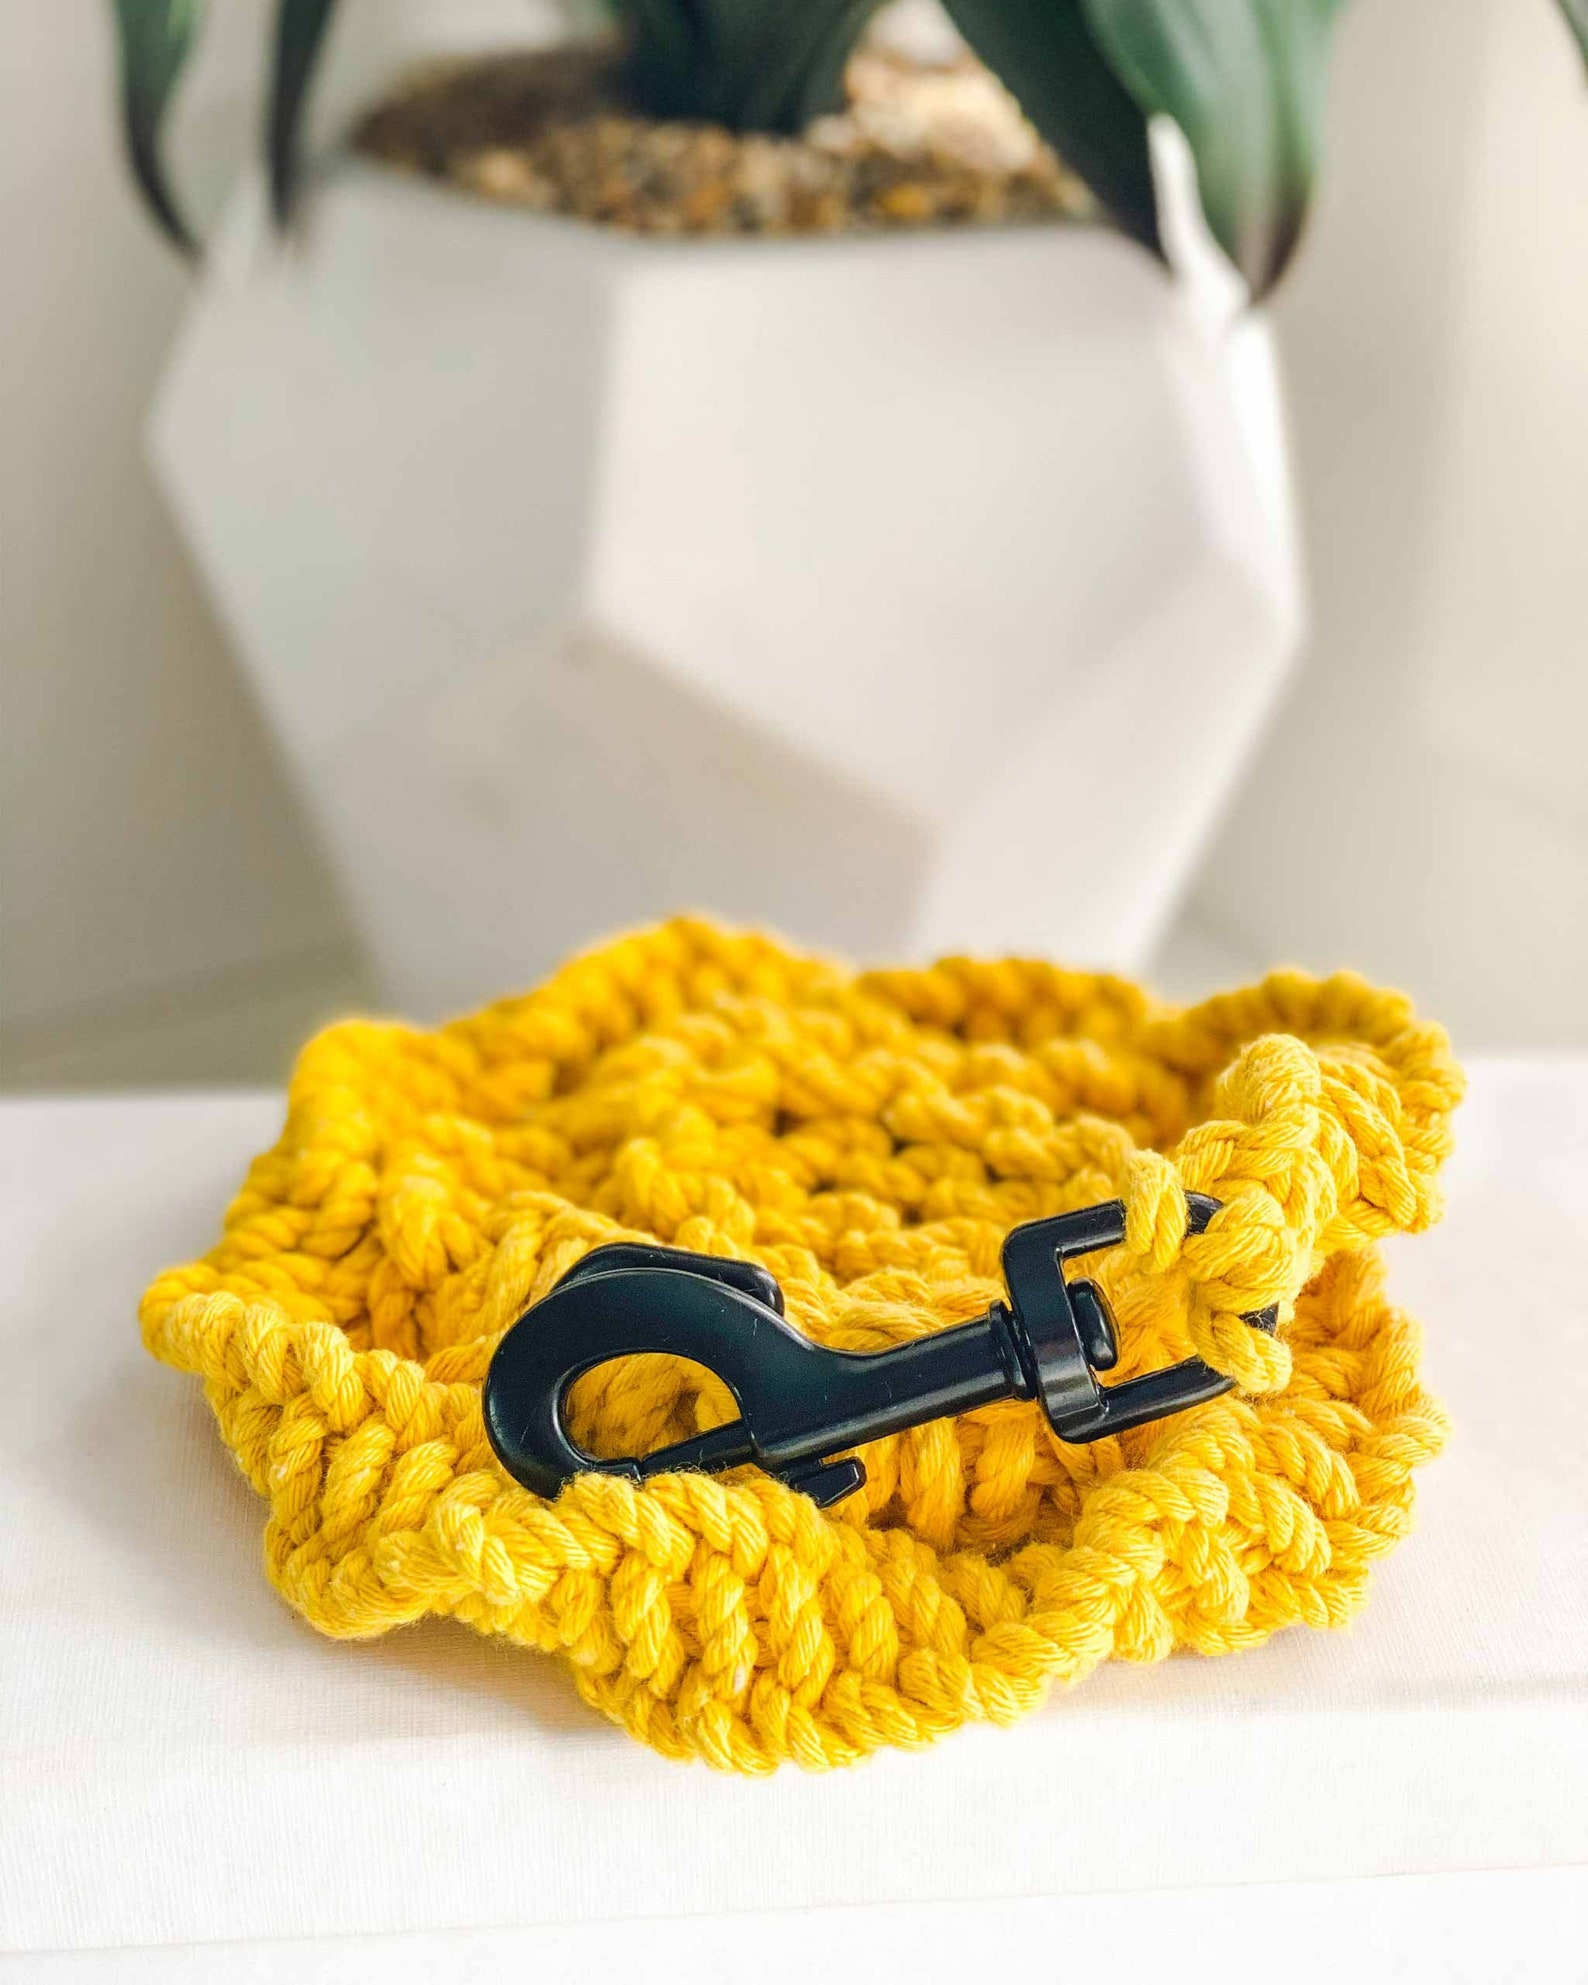 Golden macrame dog leash